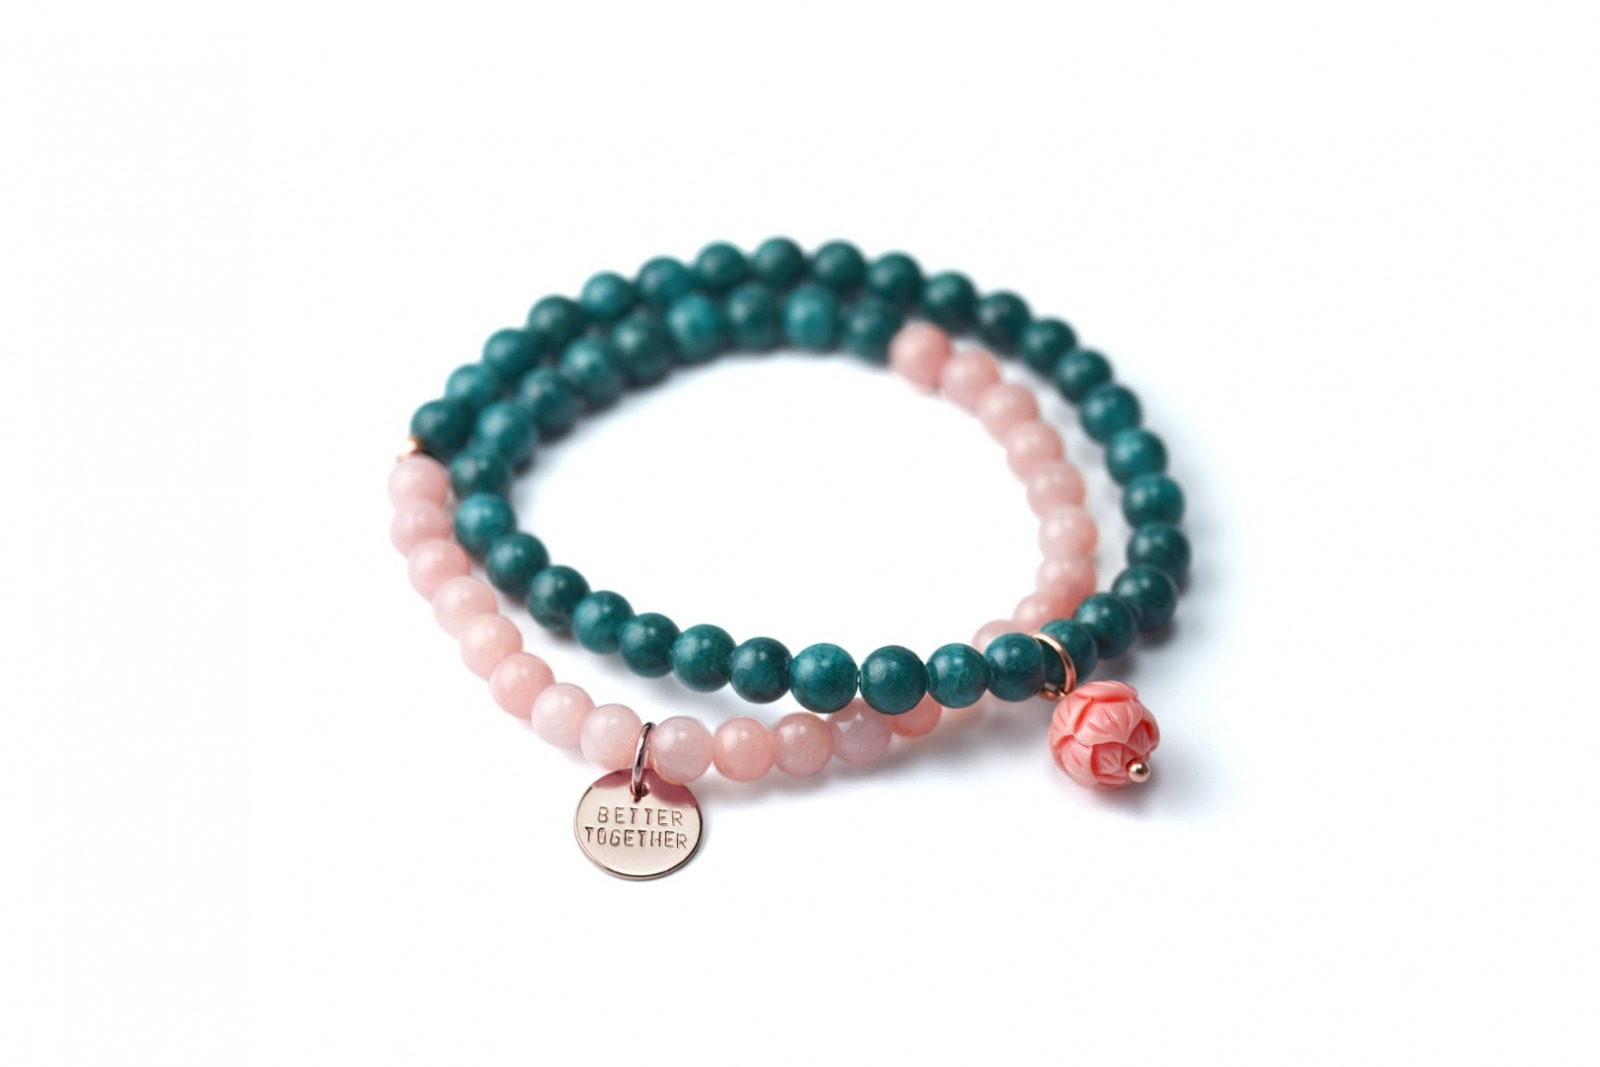 Mala Bracelet BETTER TOGETHER